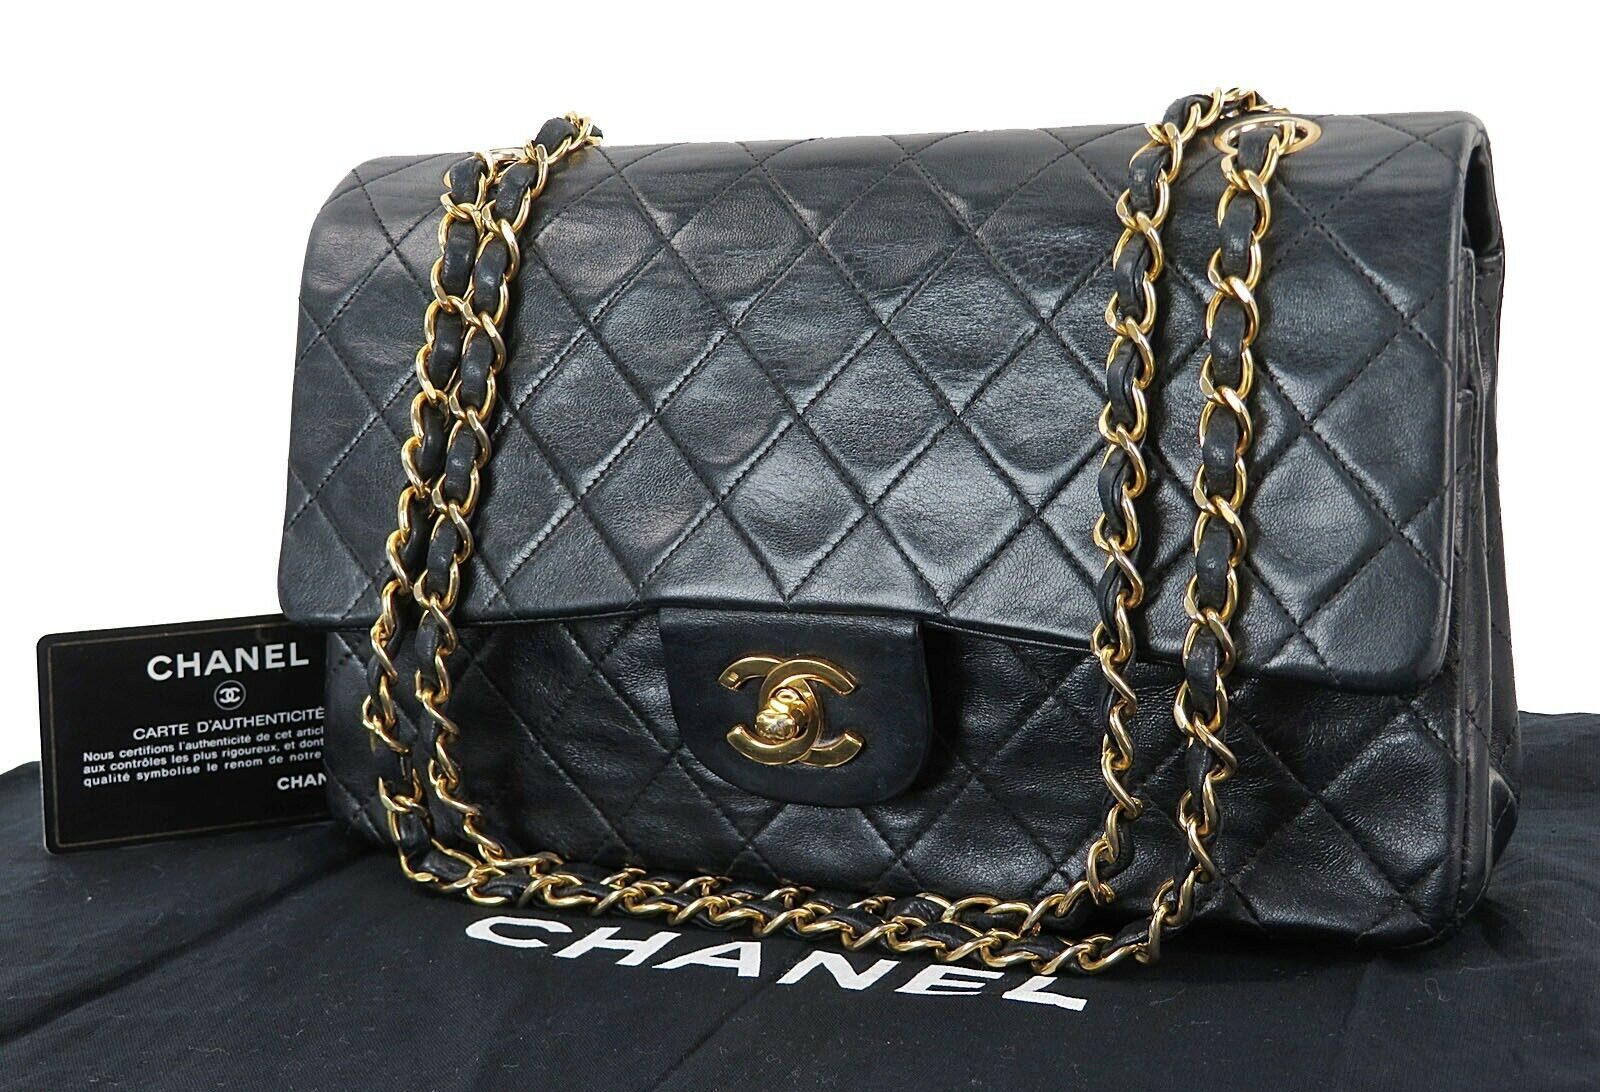 bbbf7a0ae31da0 Auth CHANEL Double Flap Black Quilted Leather Gold Chain Shoulder Bag  #32472 - $2,190.00